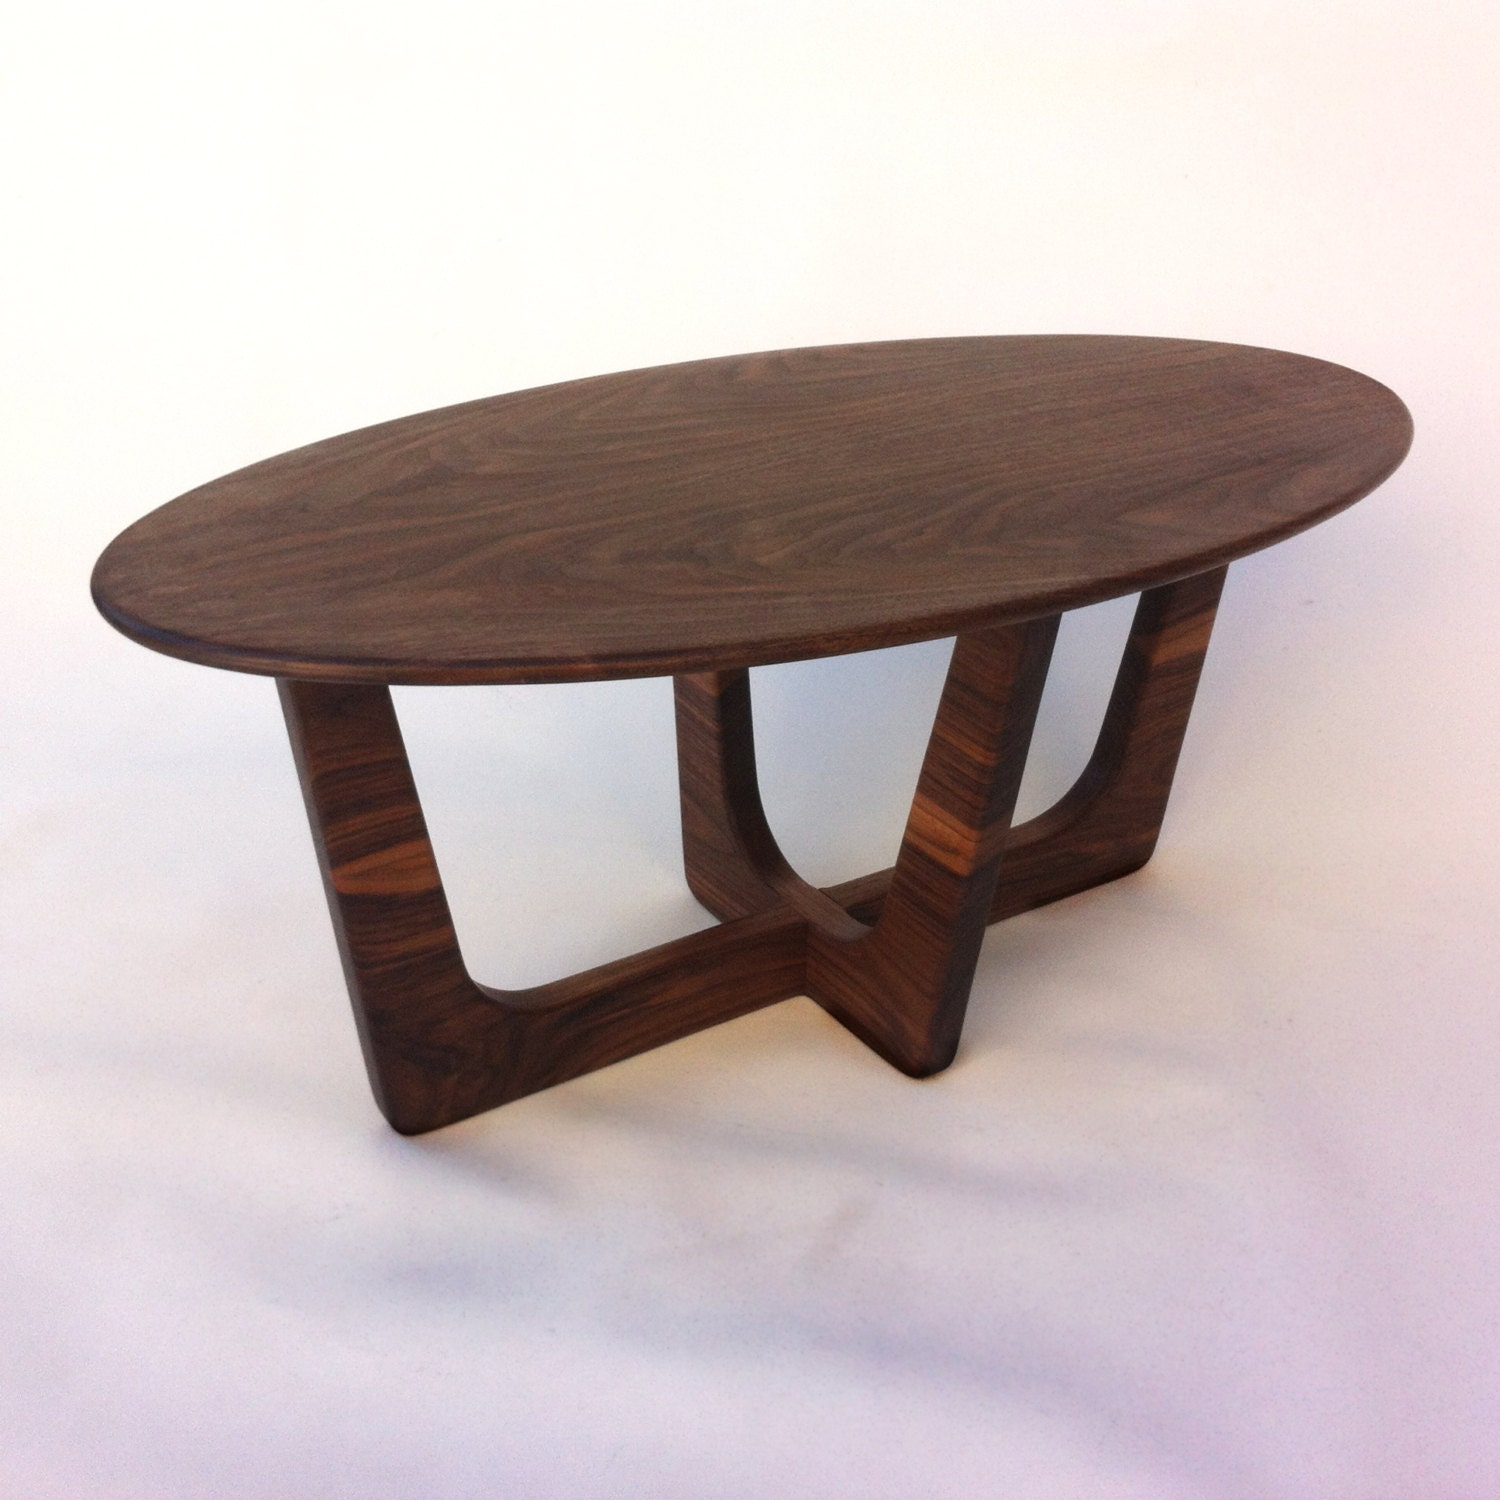 Mid century modern oval coffee table 20x40 adrian pearsall for Contemporary oval coffee tables